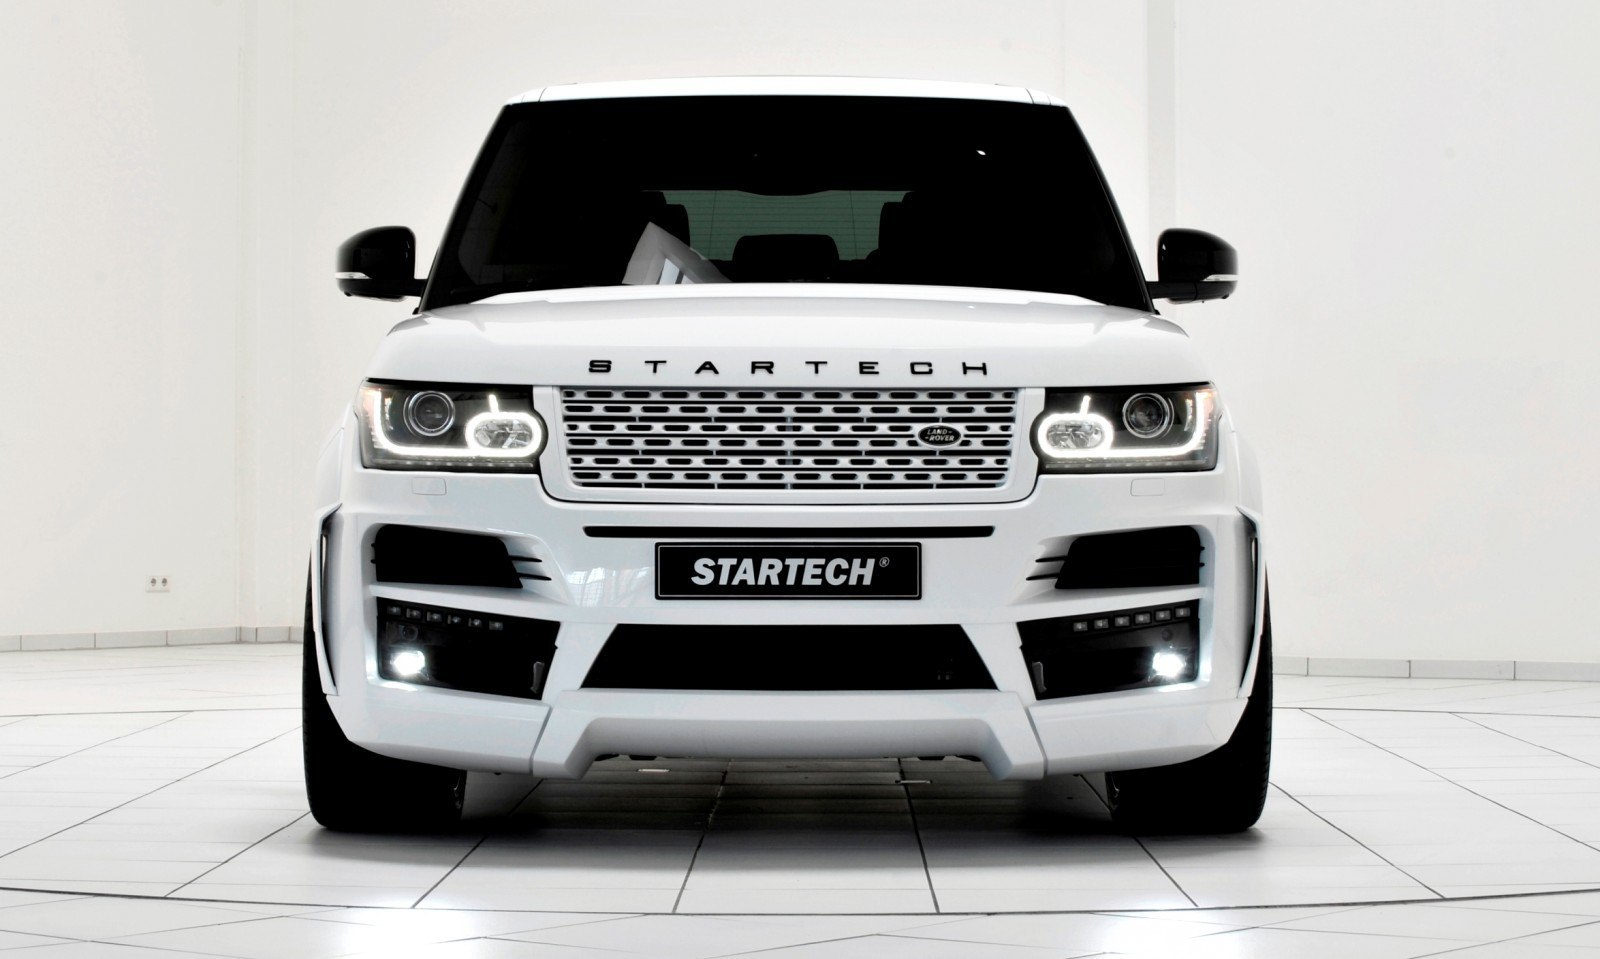 2013-2015 Range Rover By StarTech Brings Best of BRABUS Tech to Lux SUV King 24